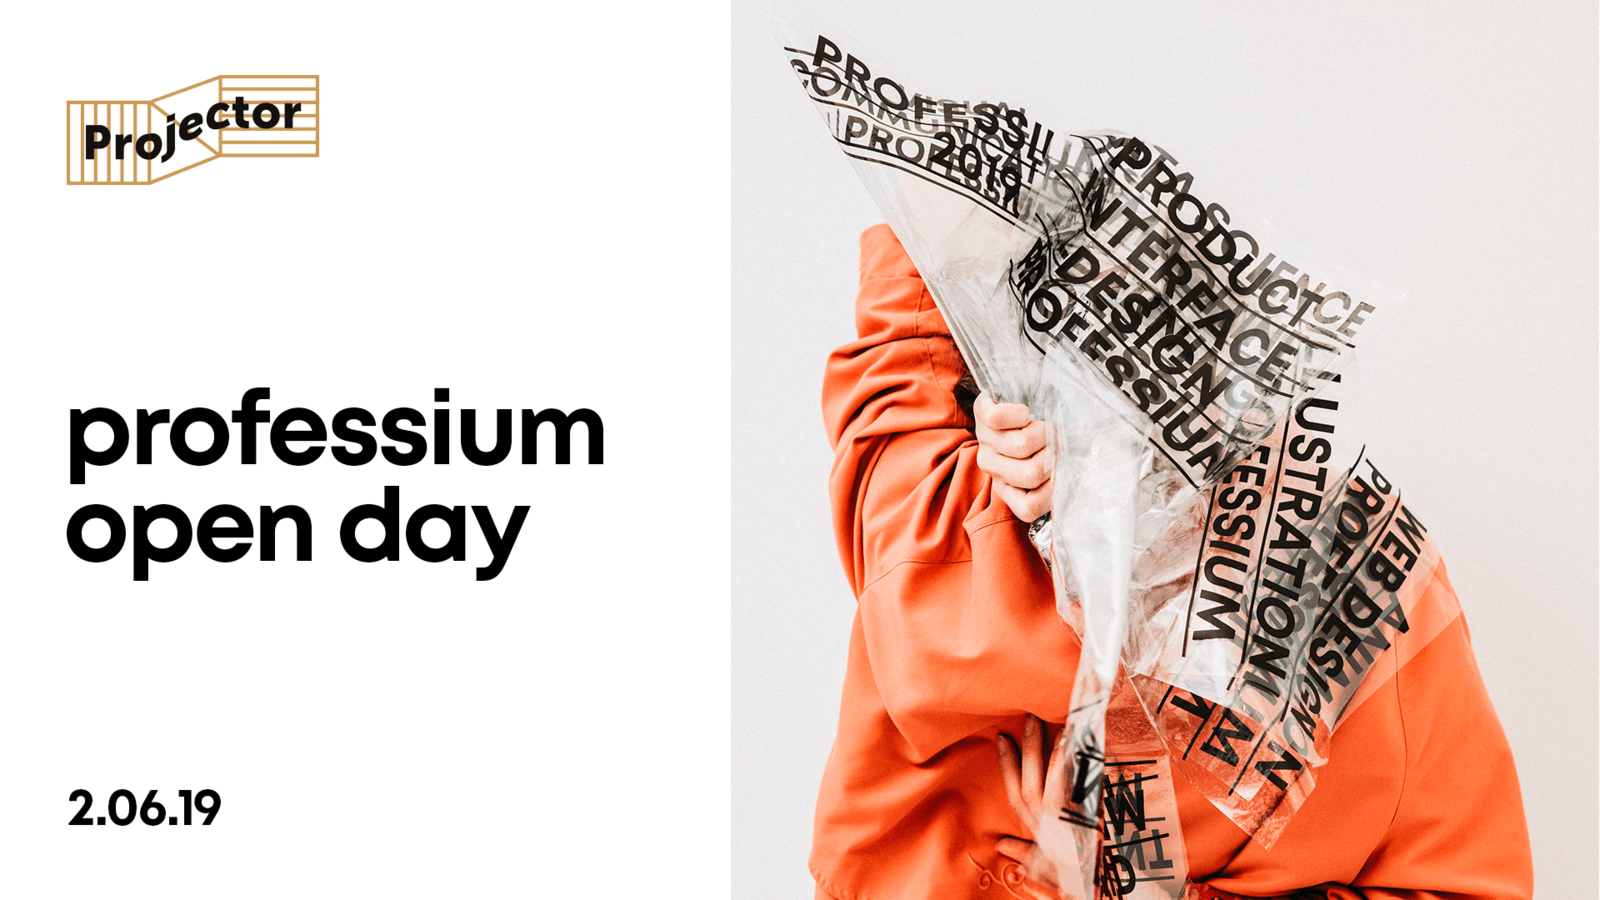 Professium open day